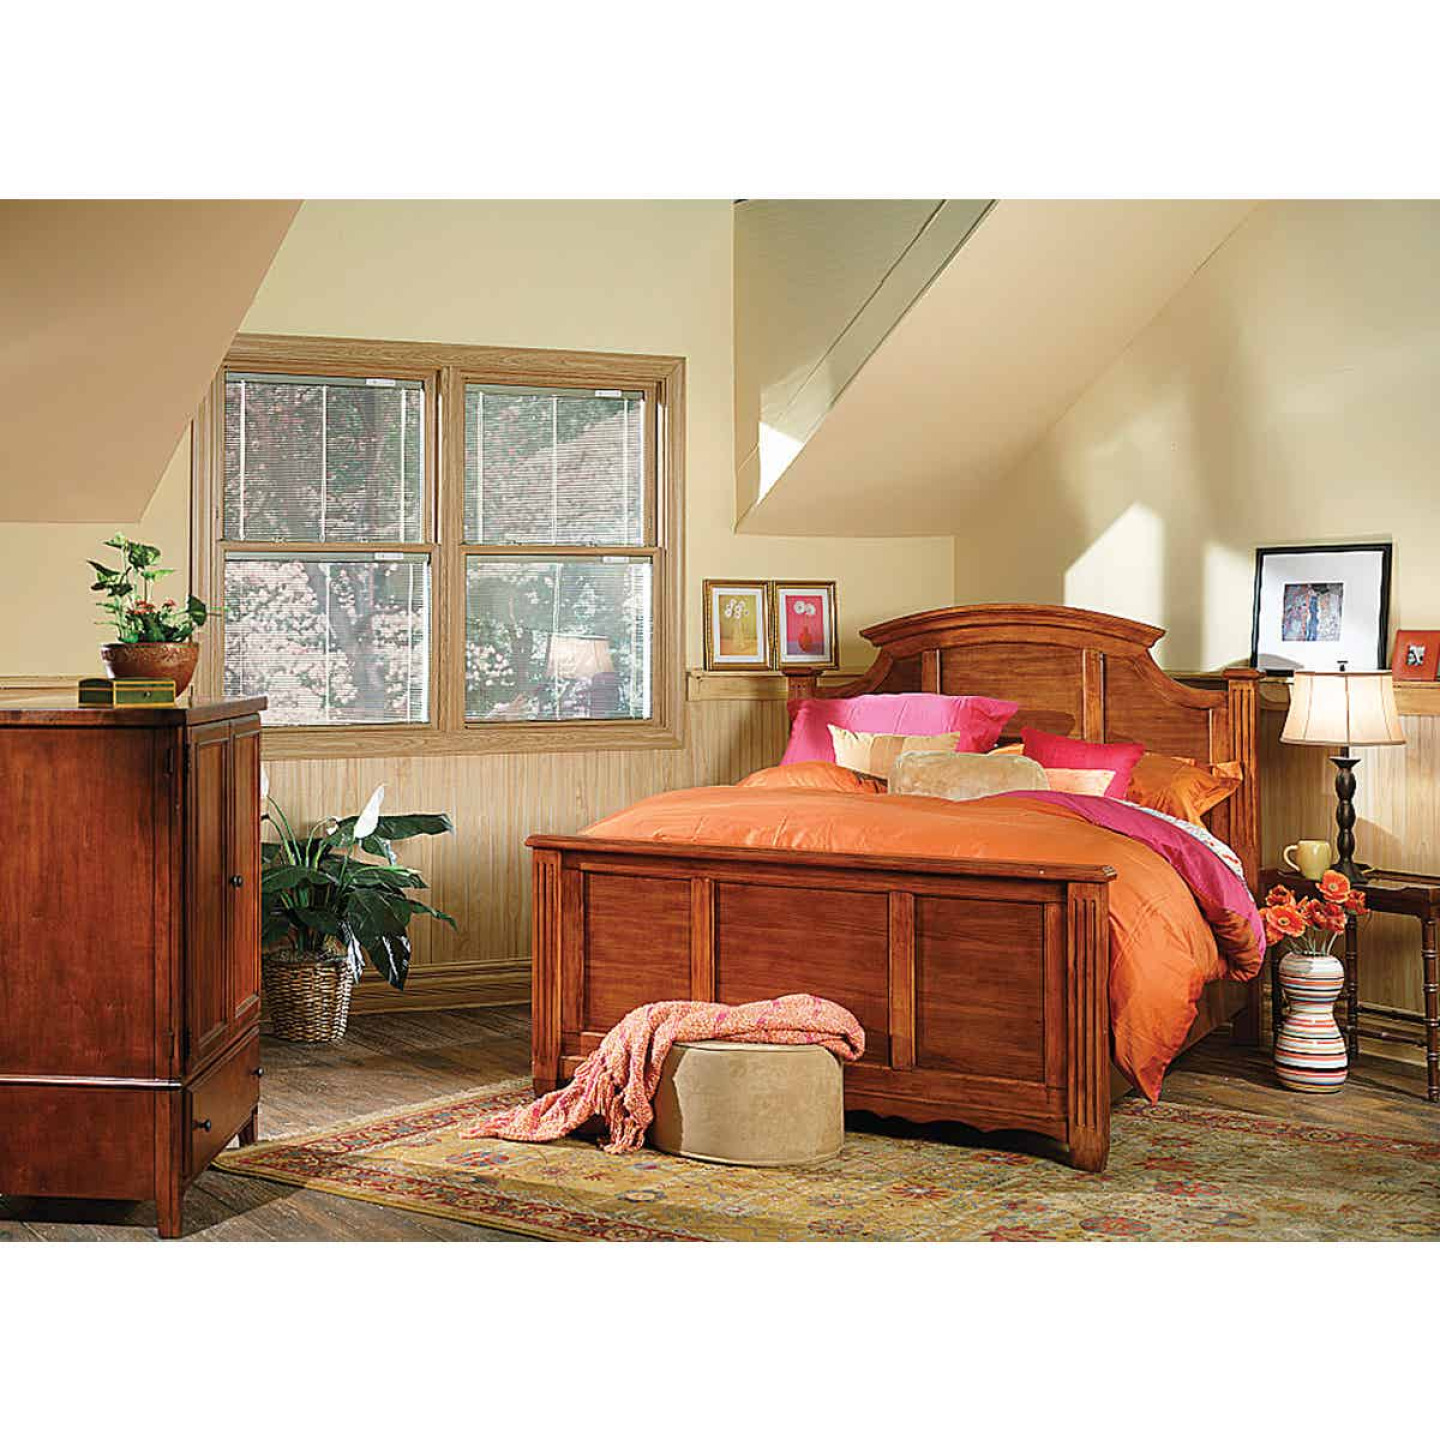 DPI 4 Ft. x 8 Ft. x 1/8 In. Frosted Maple Woodgrain Wall Paneling Image 2